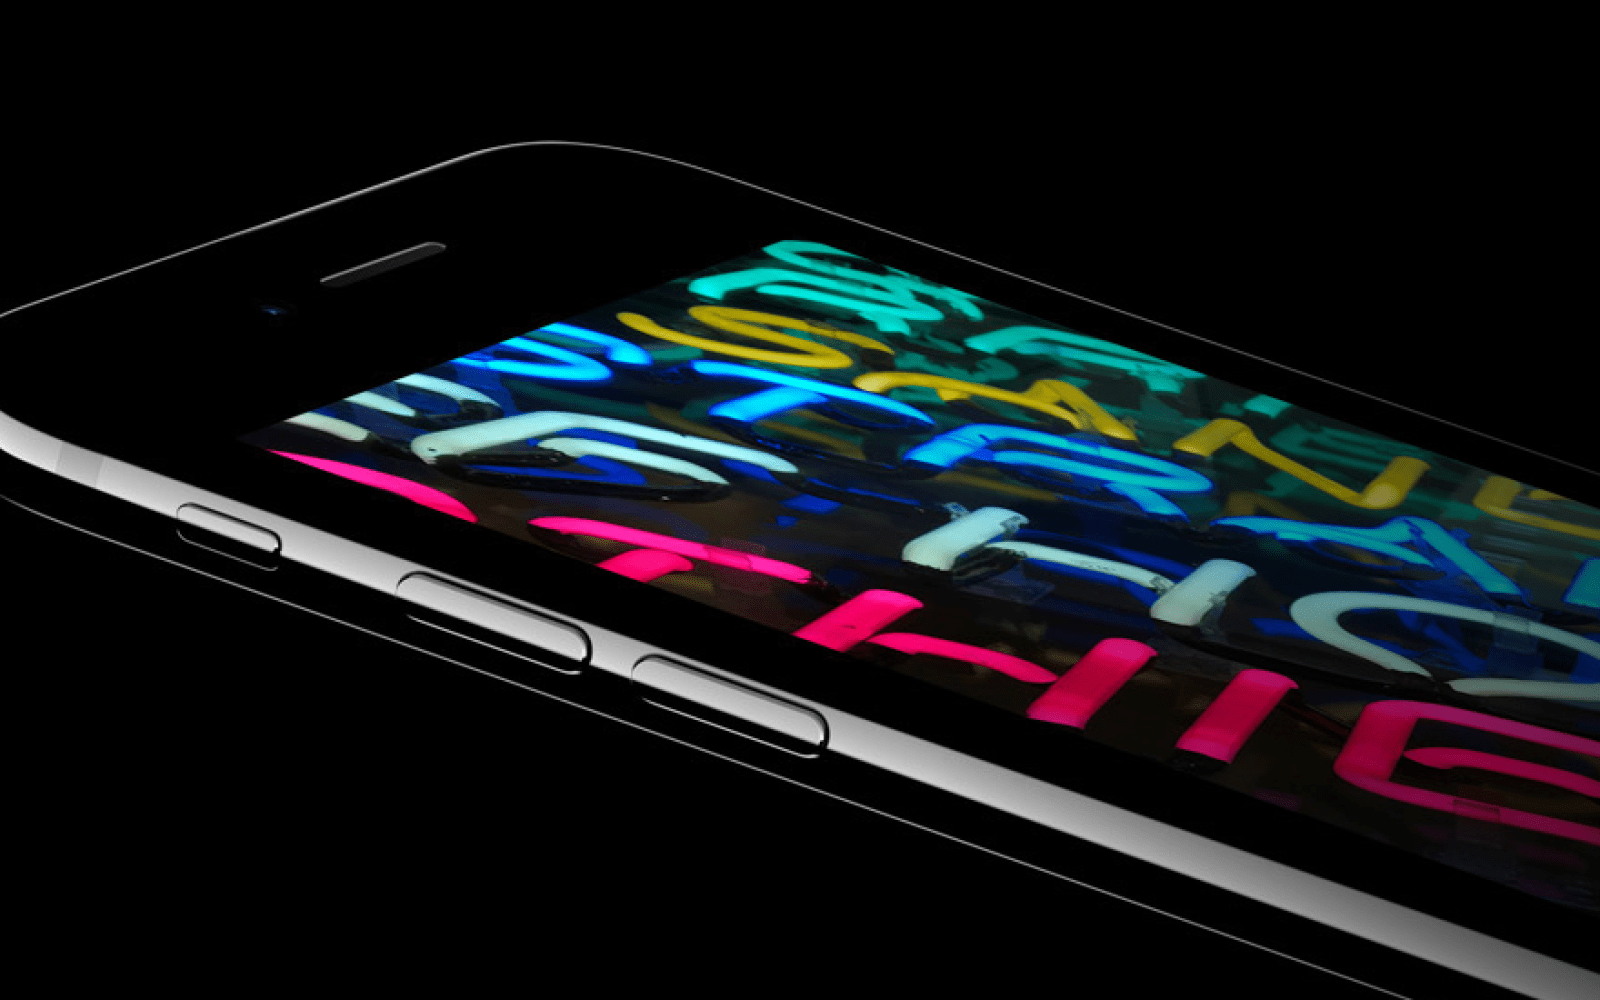 iPhone 7 display analysis shows record performance for color accuracy, brightness, screen reflectance & more